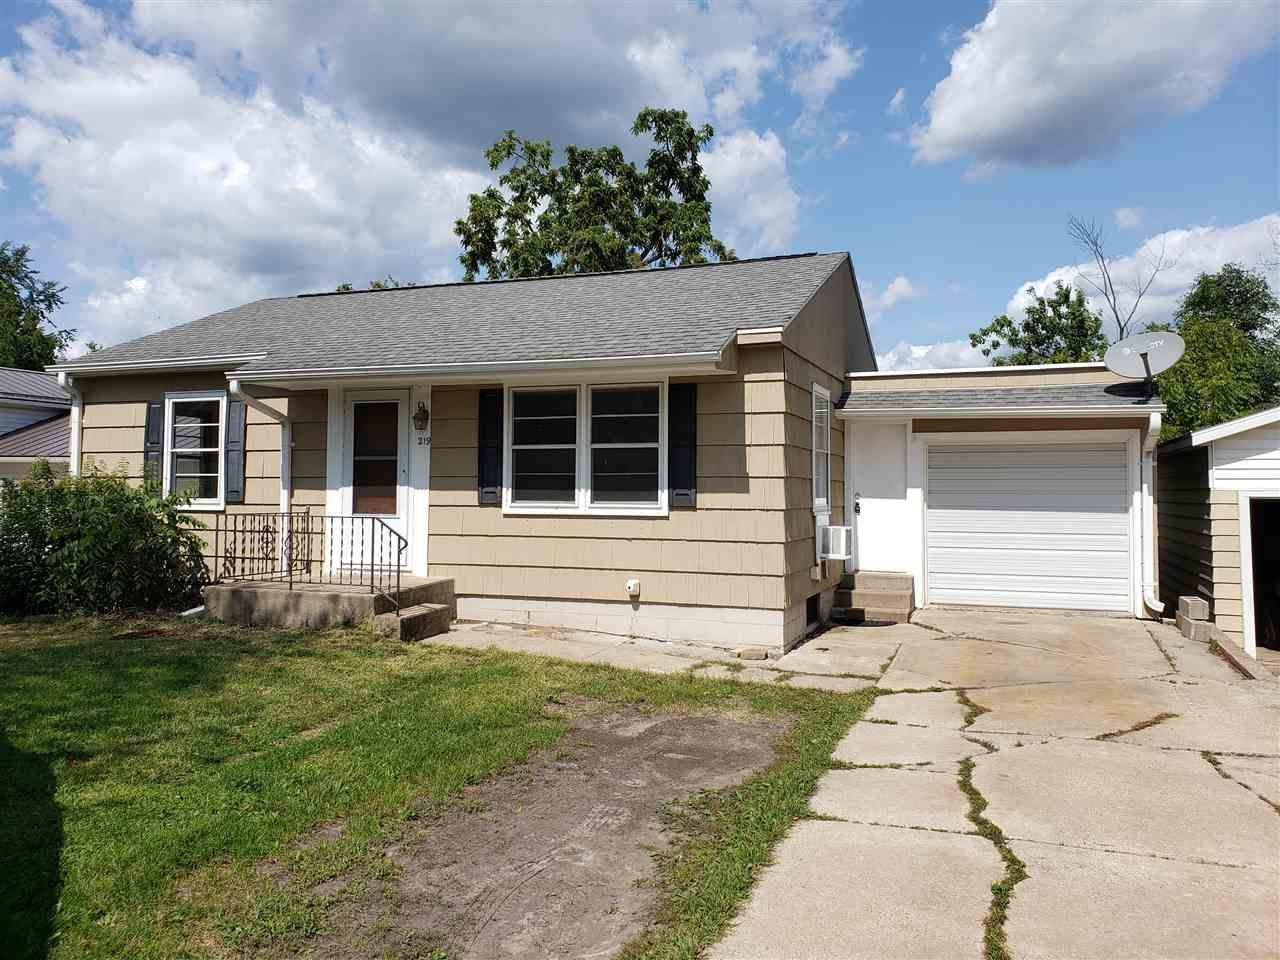 219 Grayside Ave, Mauston, WI 53948-1312 - #: 1892928